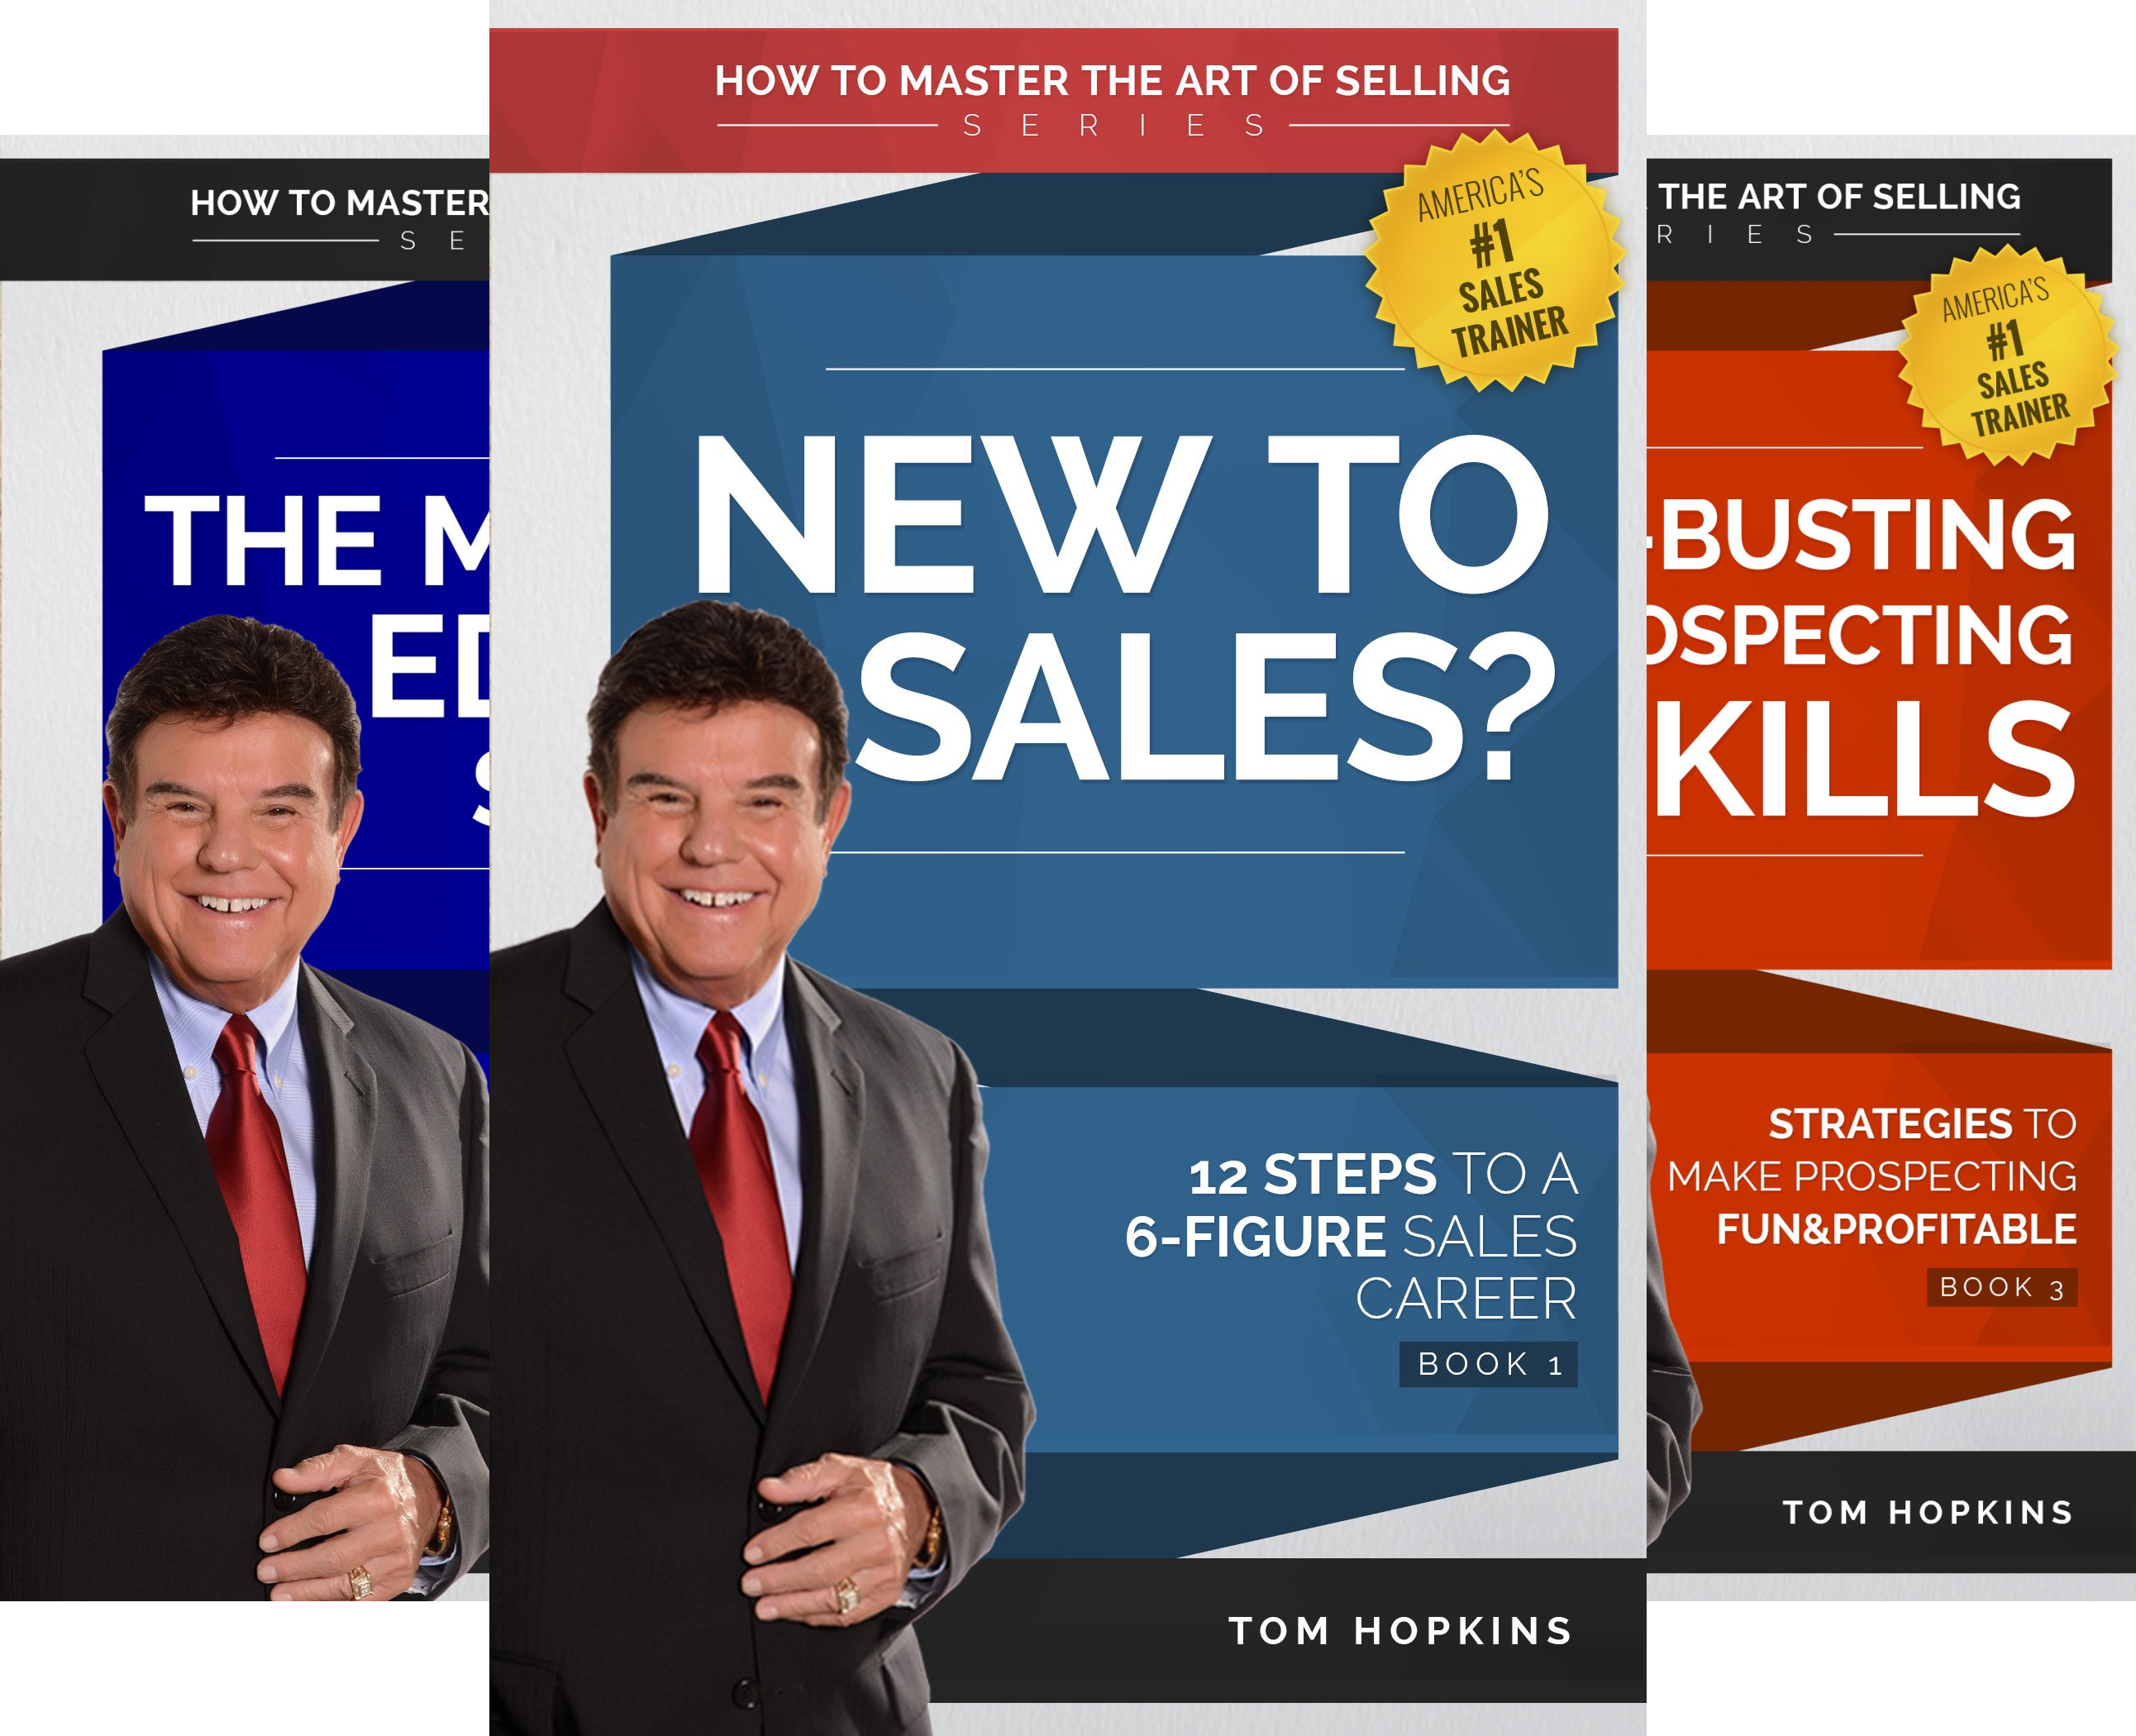 How to Master the Art of Selling (6 Book Series)